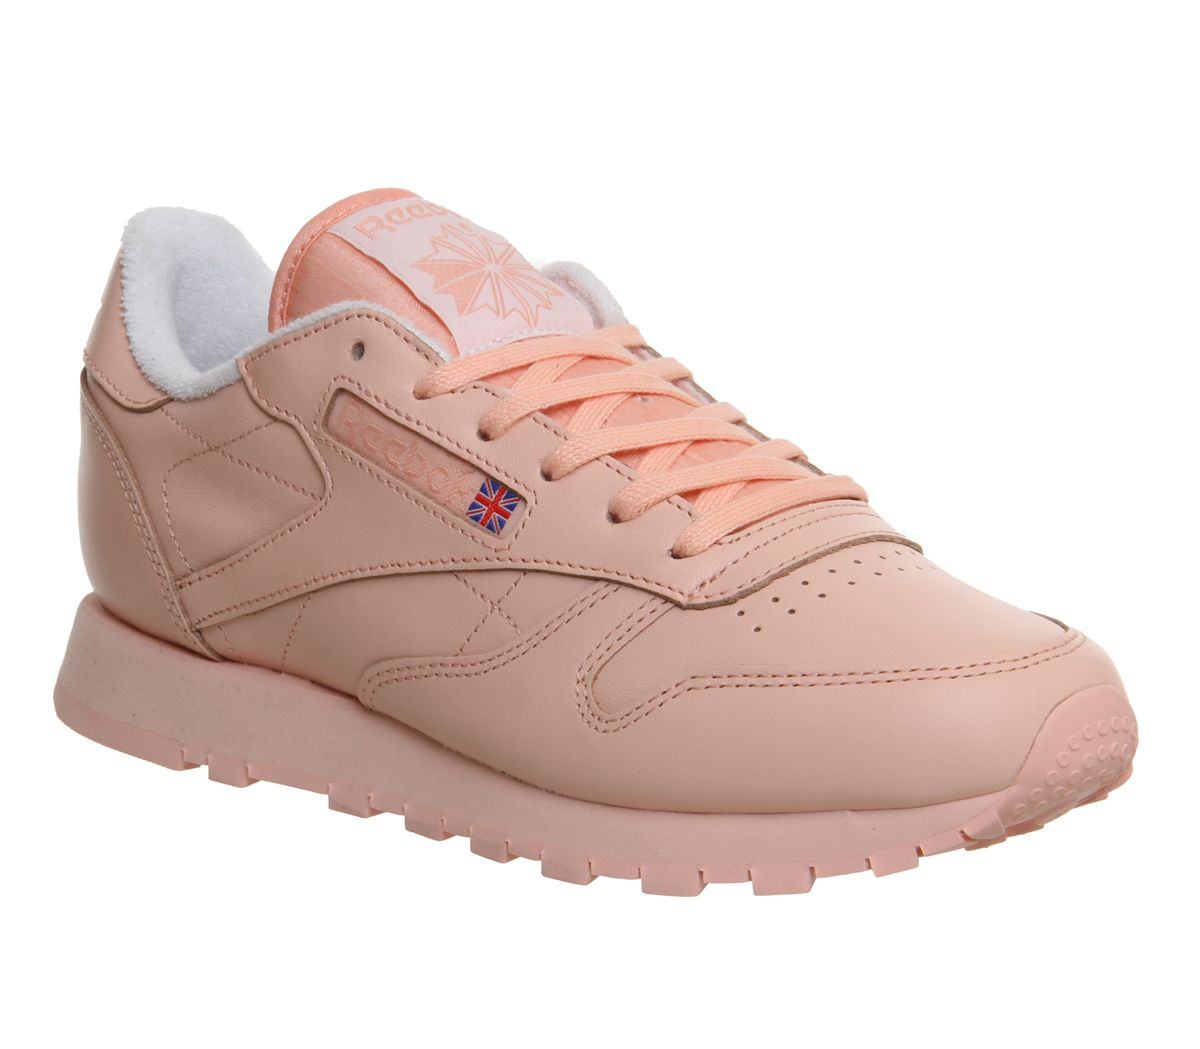 pink reebok classic high tops